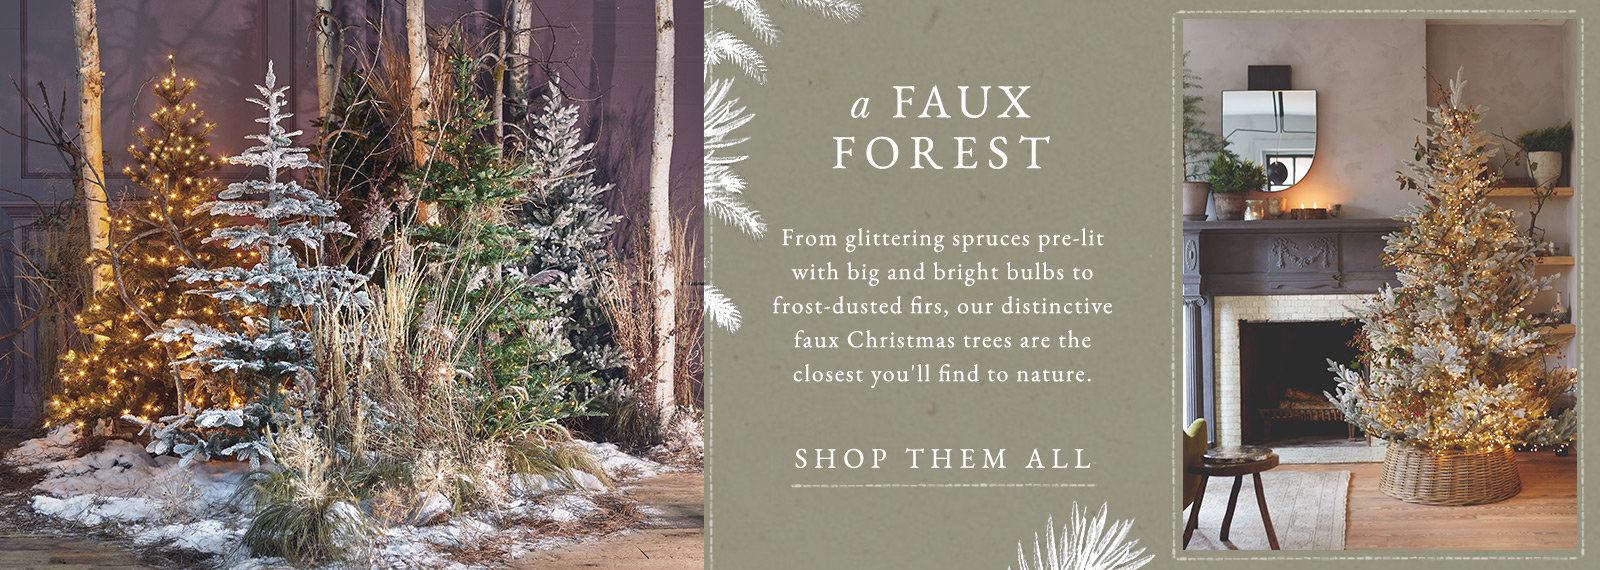 A Faux Forest | From glittering spruces pre-lit with big and bright bulbs to frost-dusted firs, our distinctive faux Christmas trees are the closest you'll find to nature.